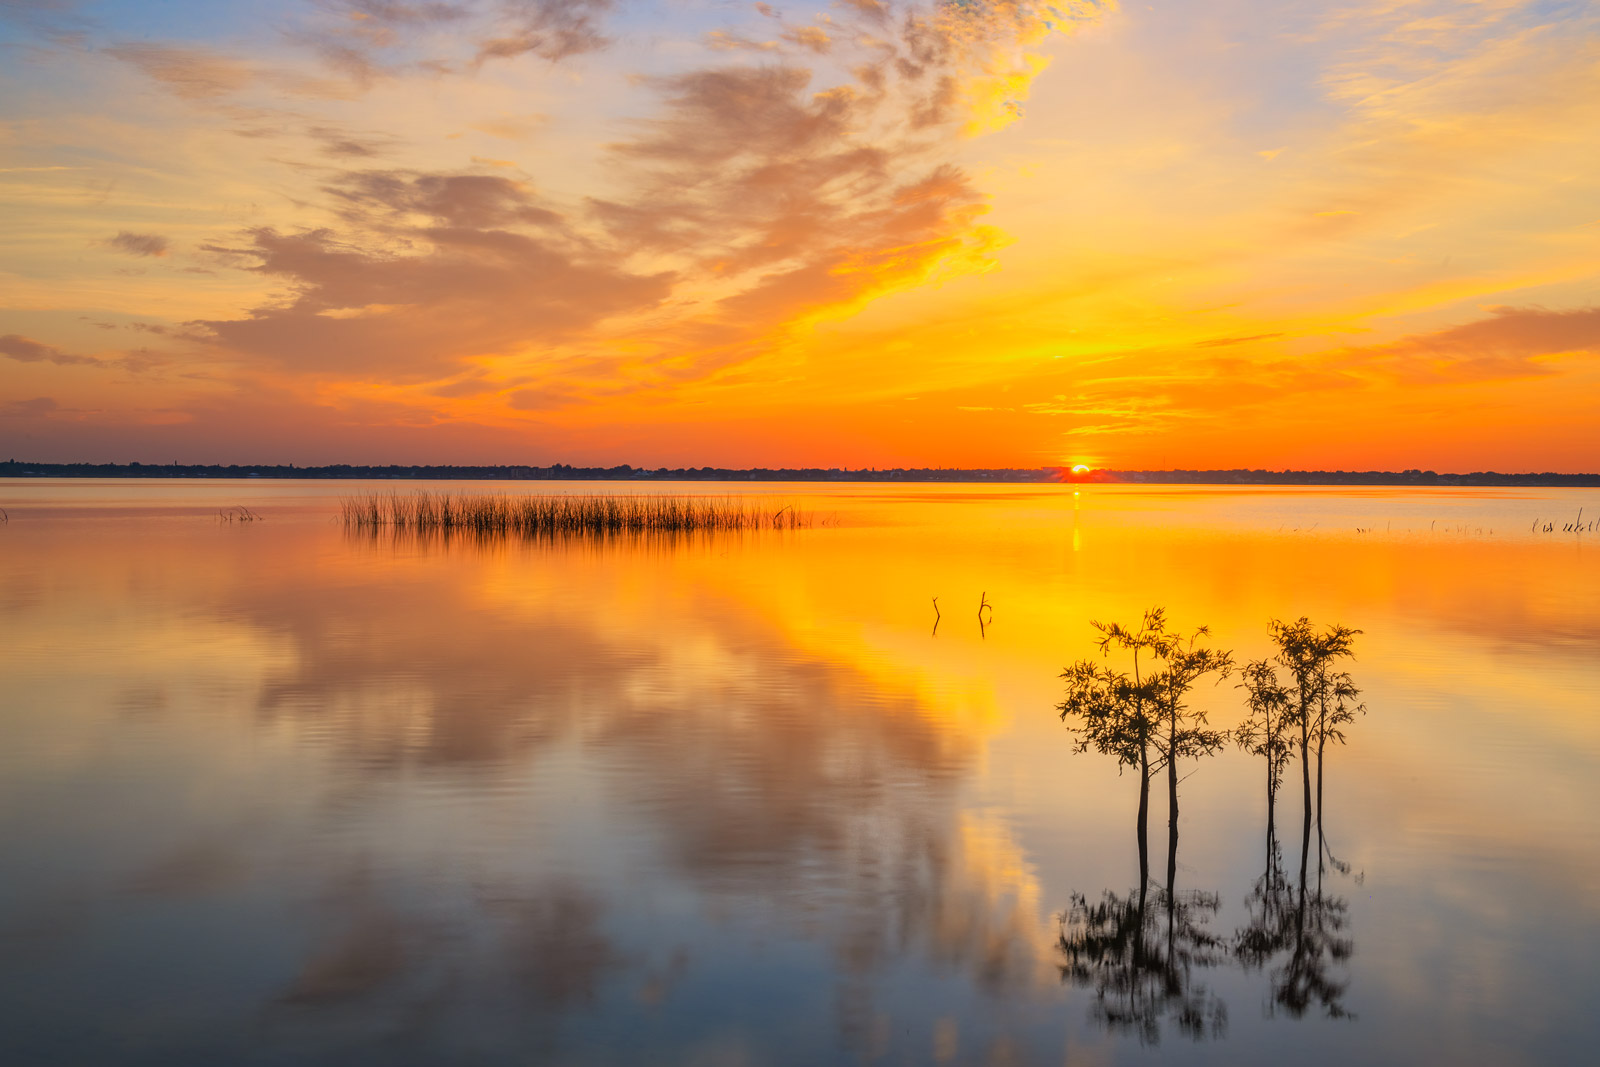 A Limited Edition, Fine Art photograph of a beautiful sunrise at Lake Jackson in Sebring, Florida. Available as a Fine Art print...